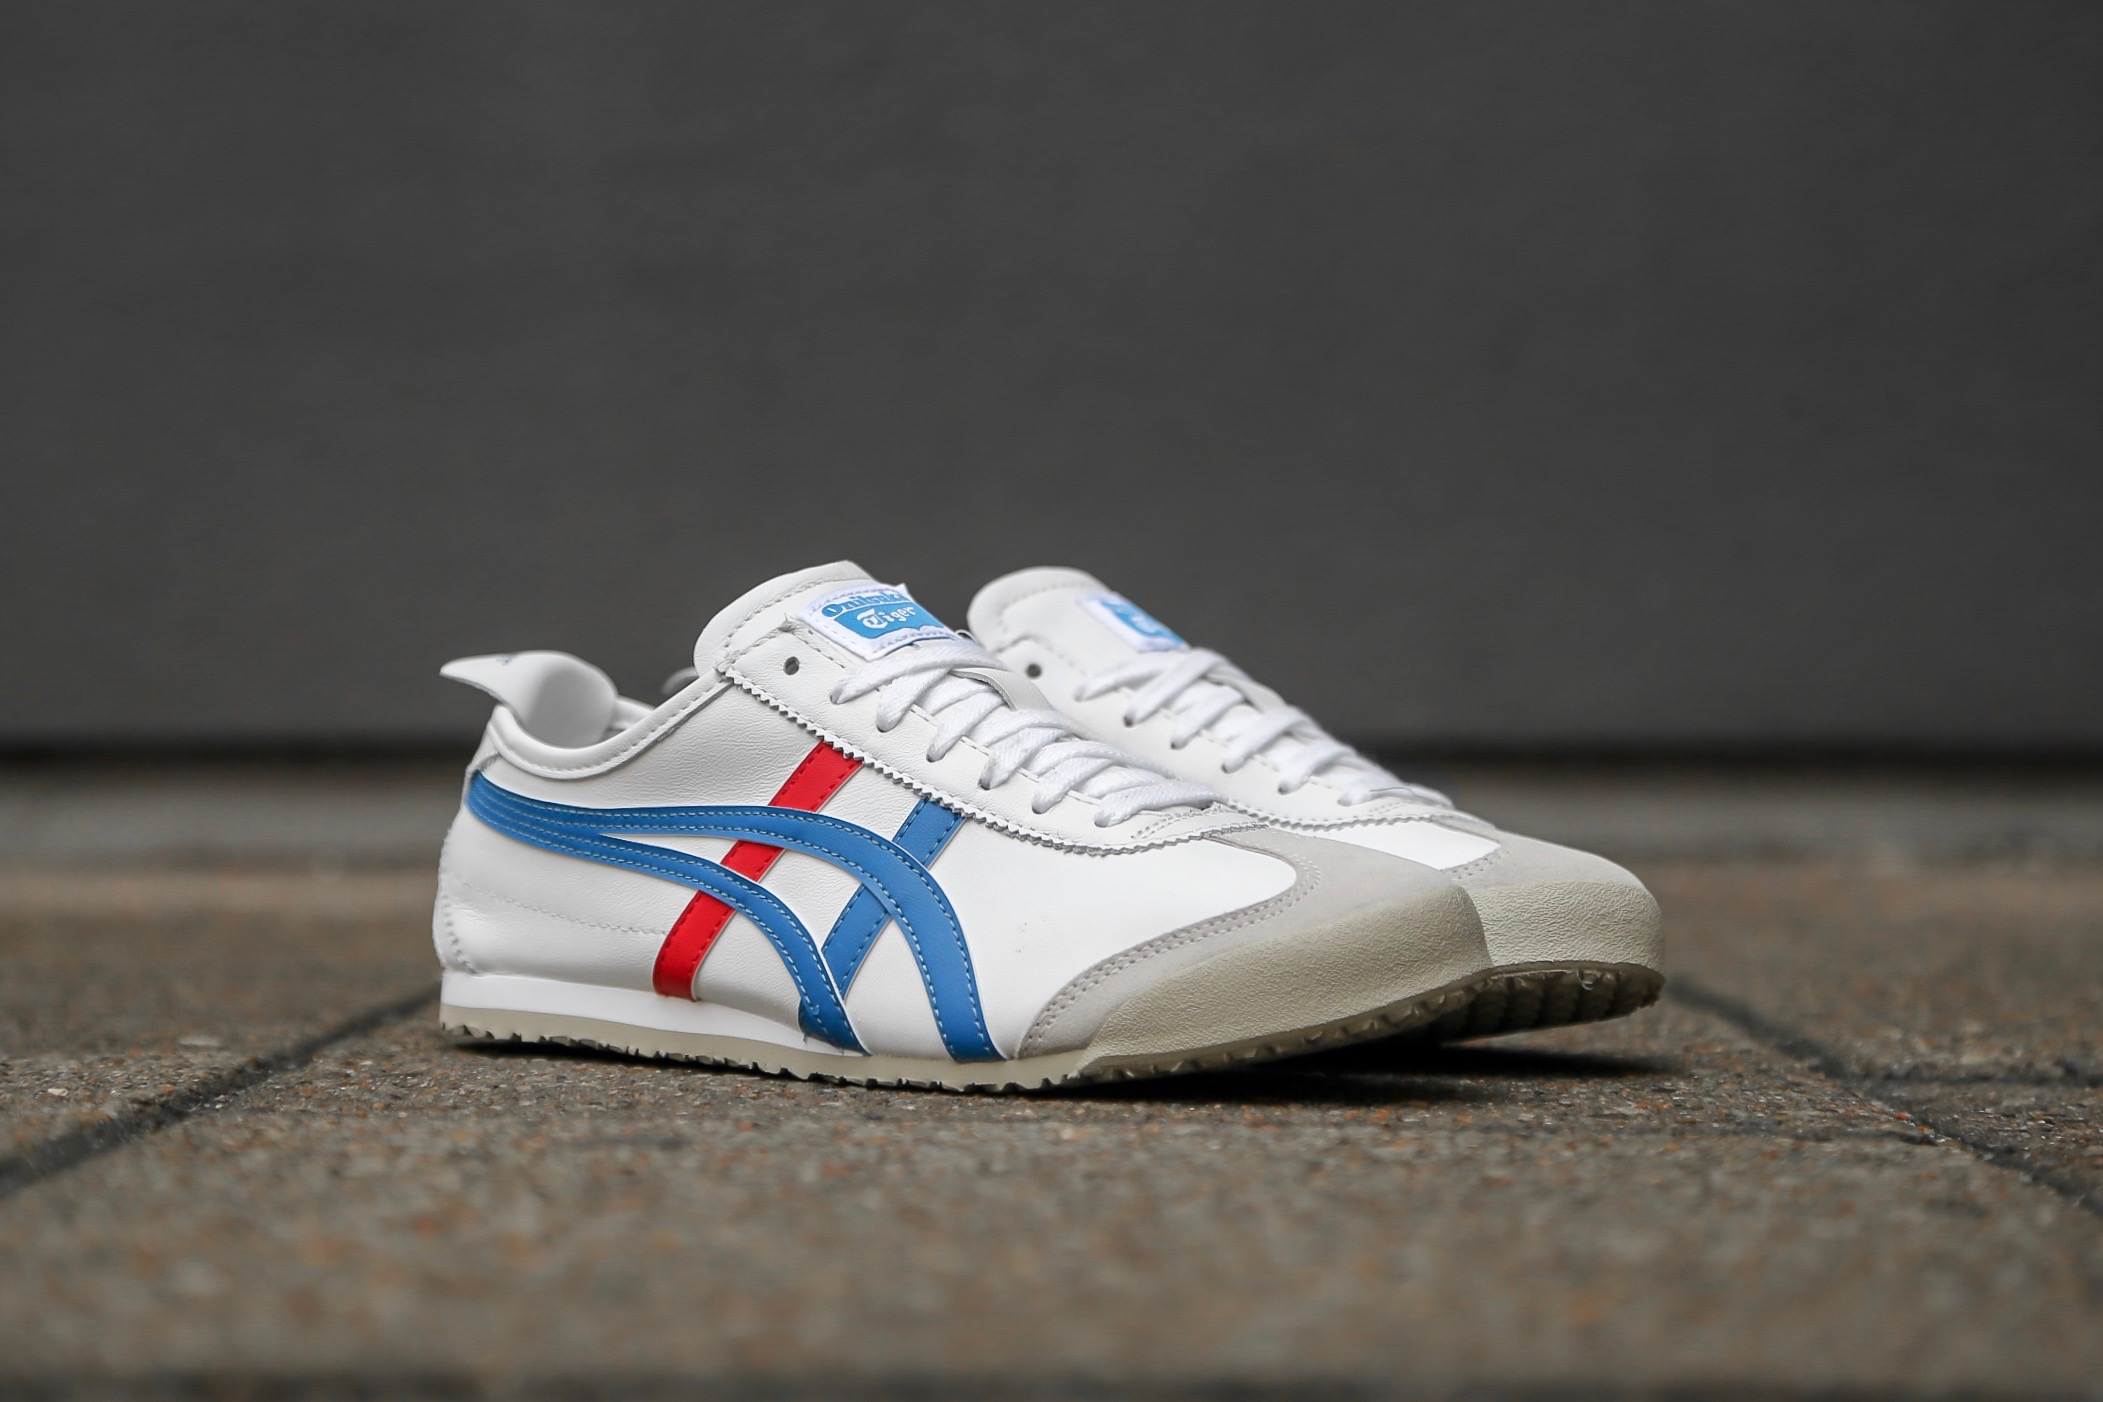 quality design 6e1d7 6f81d Onitsuka Tiger Mexico 66 - White / Blue